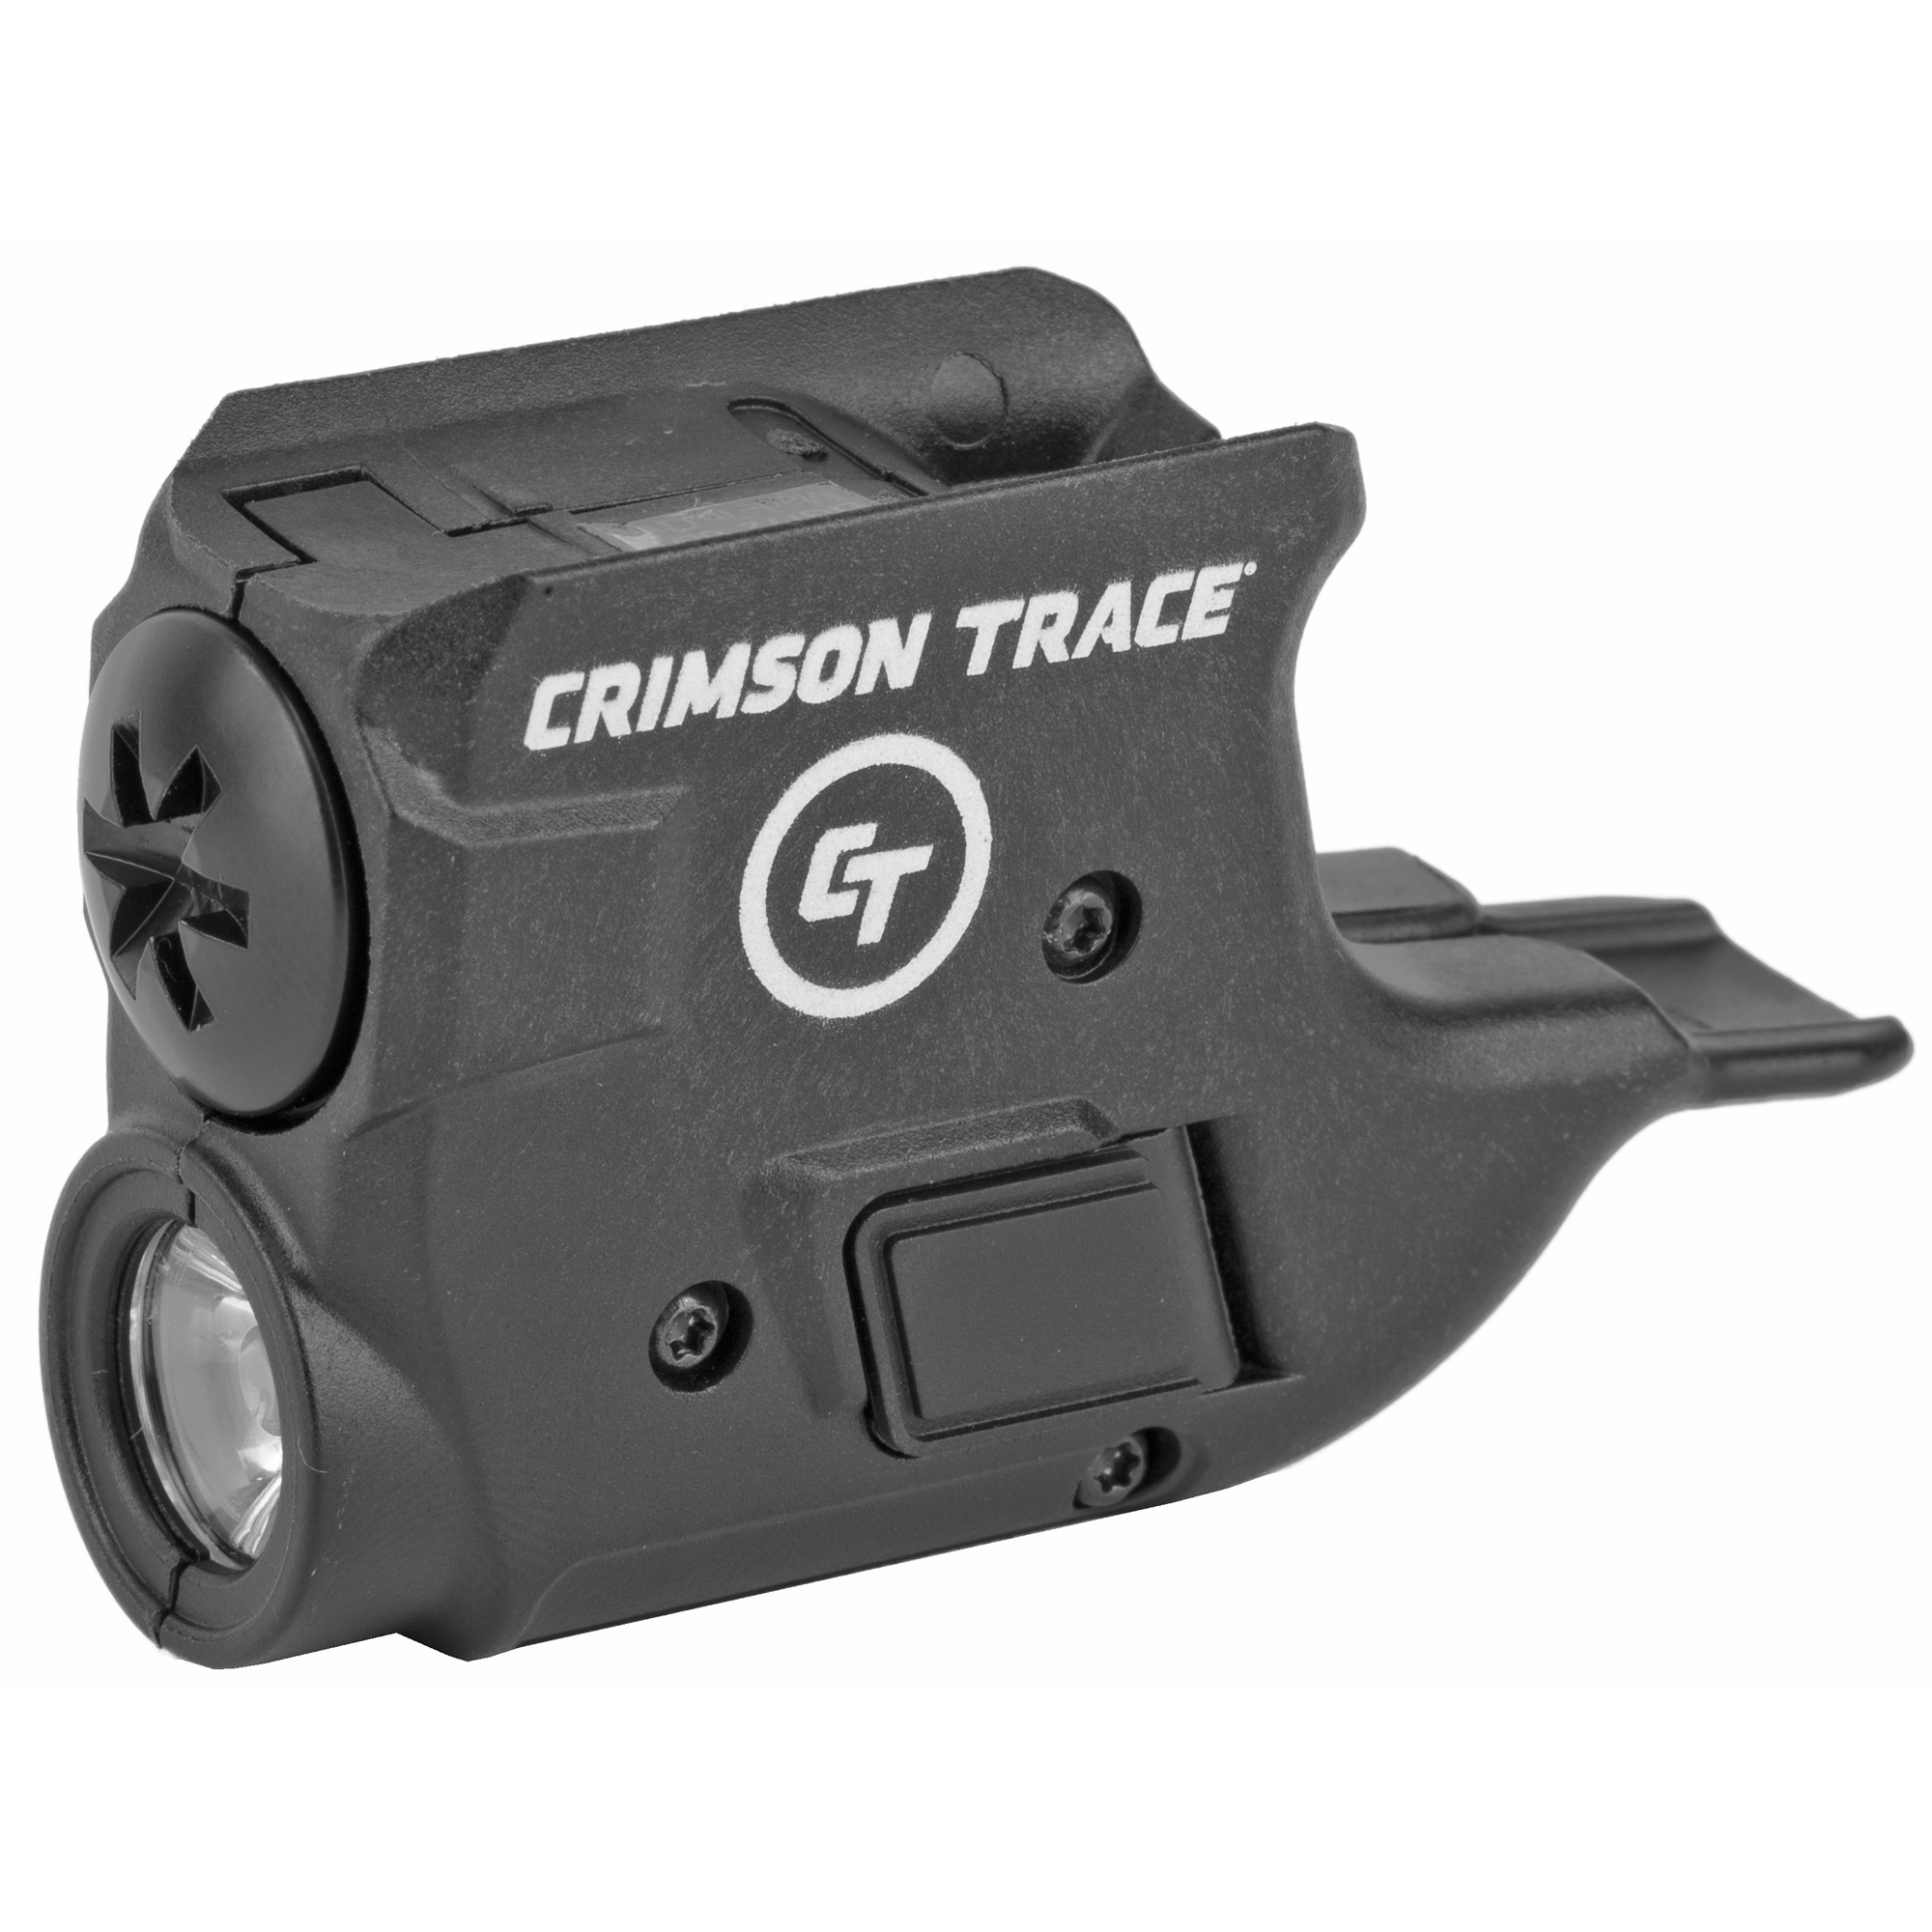 """The LTG-772 Lightguard(TM) is a 110 Lumen LED White Light designed to securely fit around the trigger guard of SIG SAUER(R) P365 pistols. Featuring ambidextrous Instant Activation(TM) with Constant and Momentary modes"""" the LTG-772 offers over one (1) hour of illumination with two (2) 1/3N batteries (included). With ruggedized polymer construction and a rapid change battery cap"""" this tactical light offers effective illumination for P365 owners. A best-in-class weapon mounted light from the brand you trust for personal protection optics."""